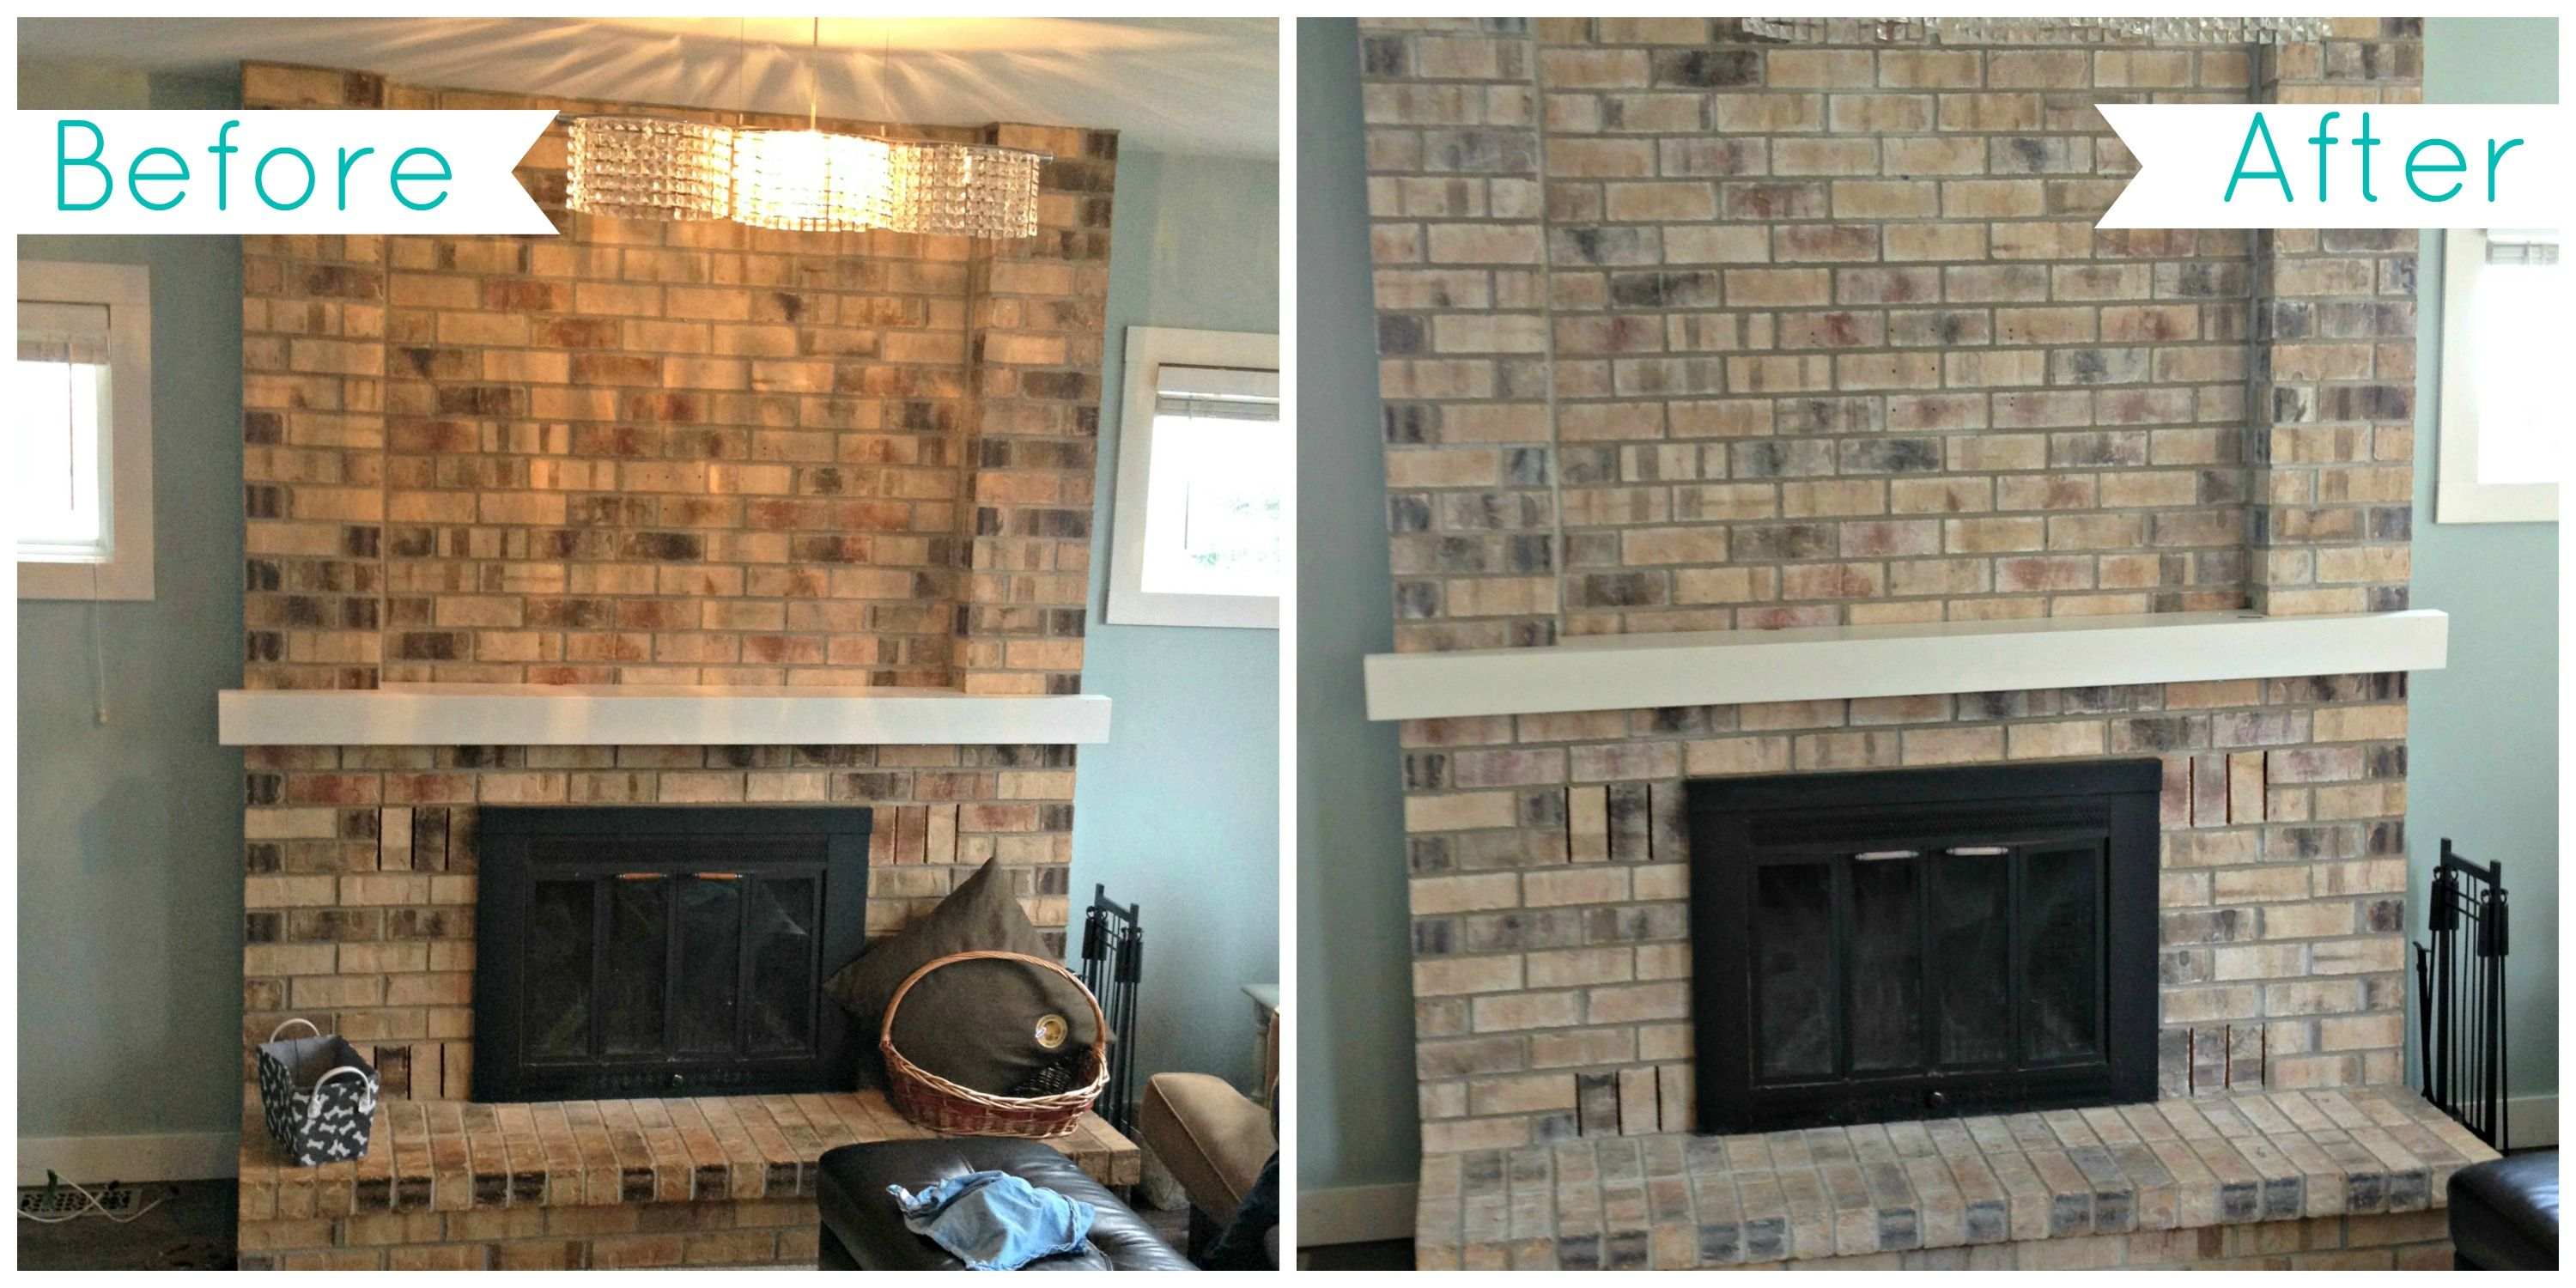 Whitewash Fireplace Before And After Painted Brick Fireplace Before And After Fireplace White Wash